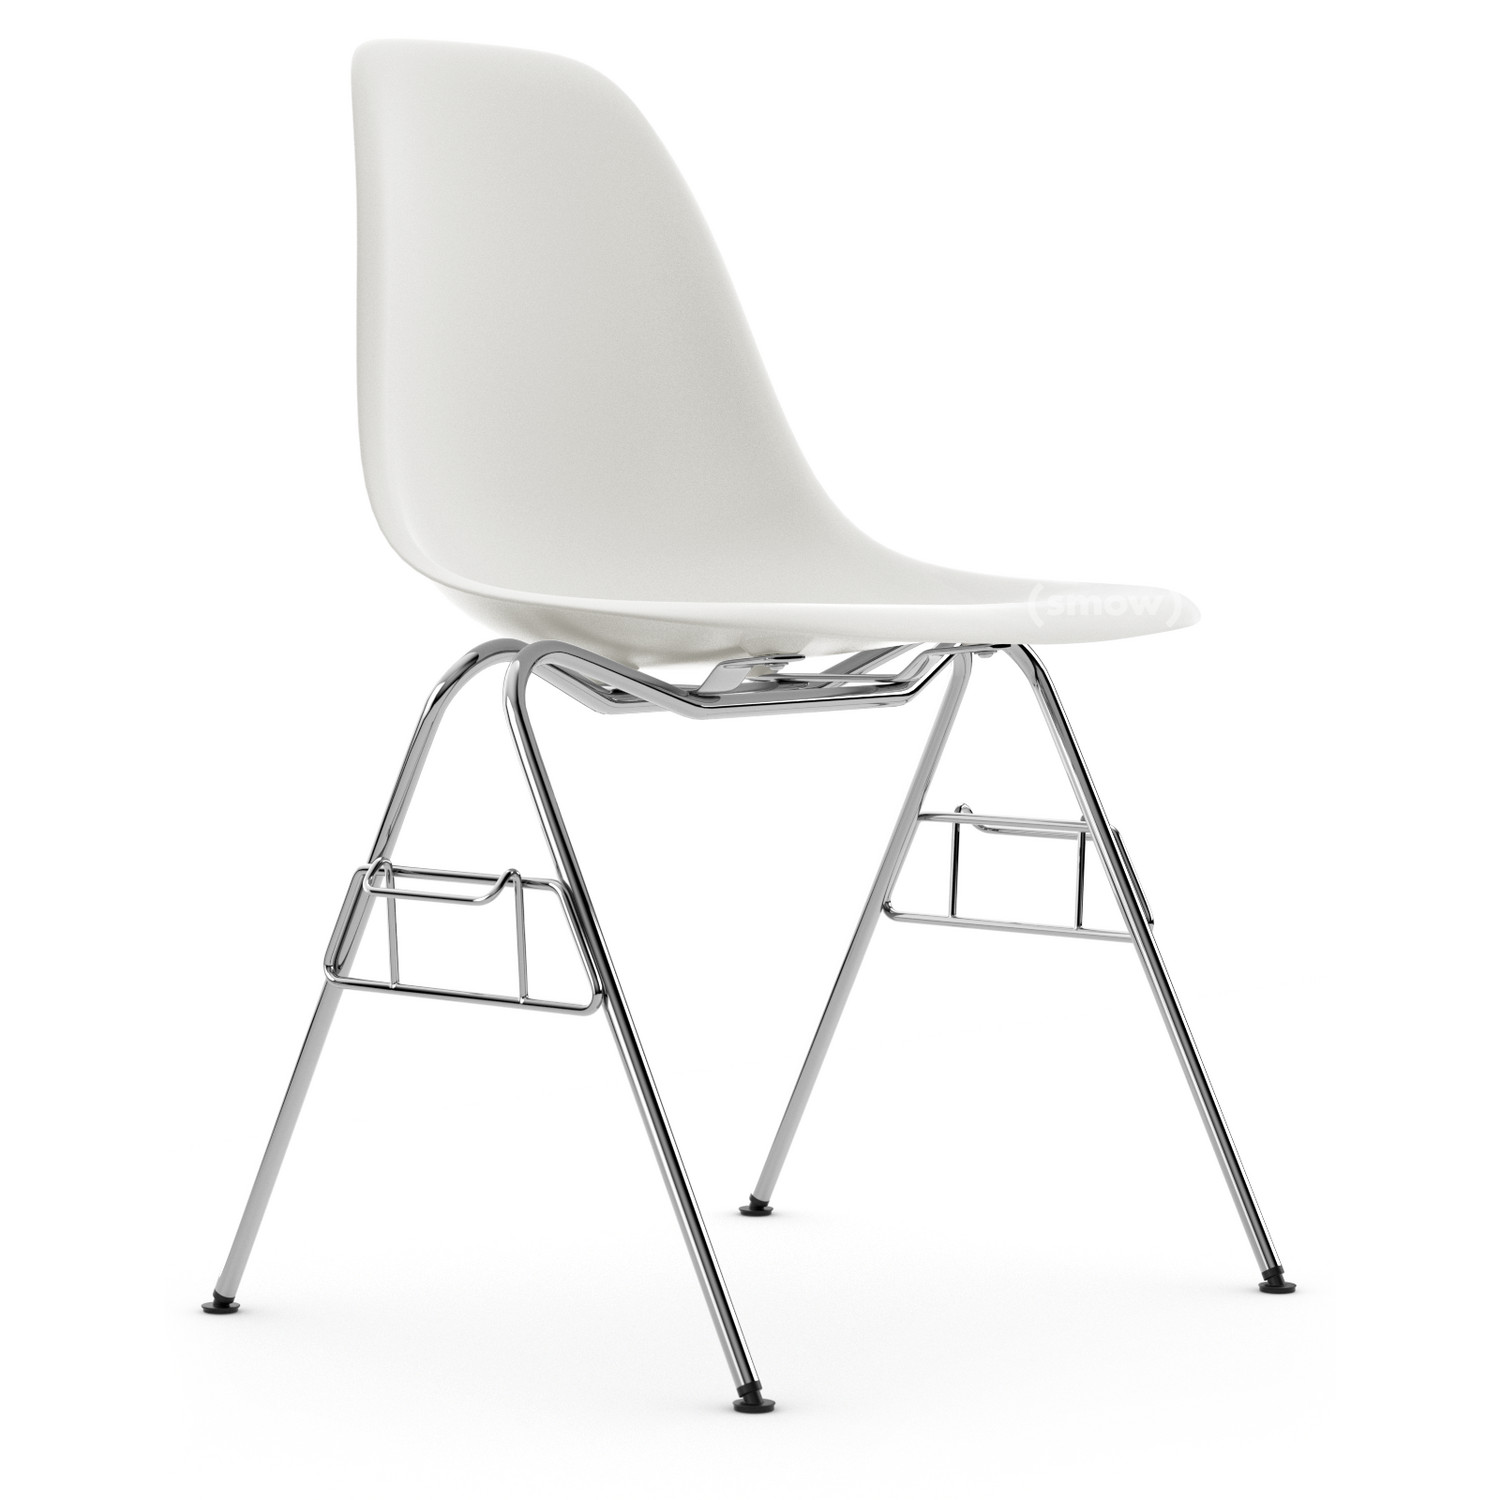 vitra eames plastic side chair dss white without upholstery without upholstery with linking. Black Bedroom Furniture Sets. Home Design Ideas